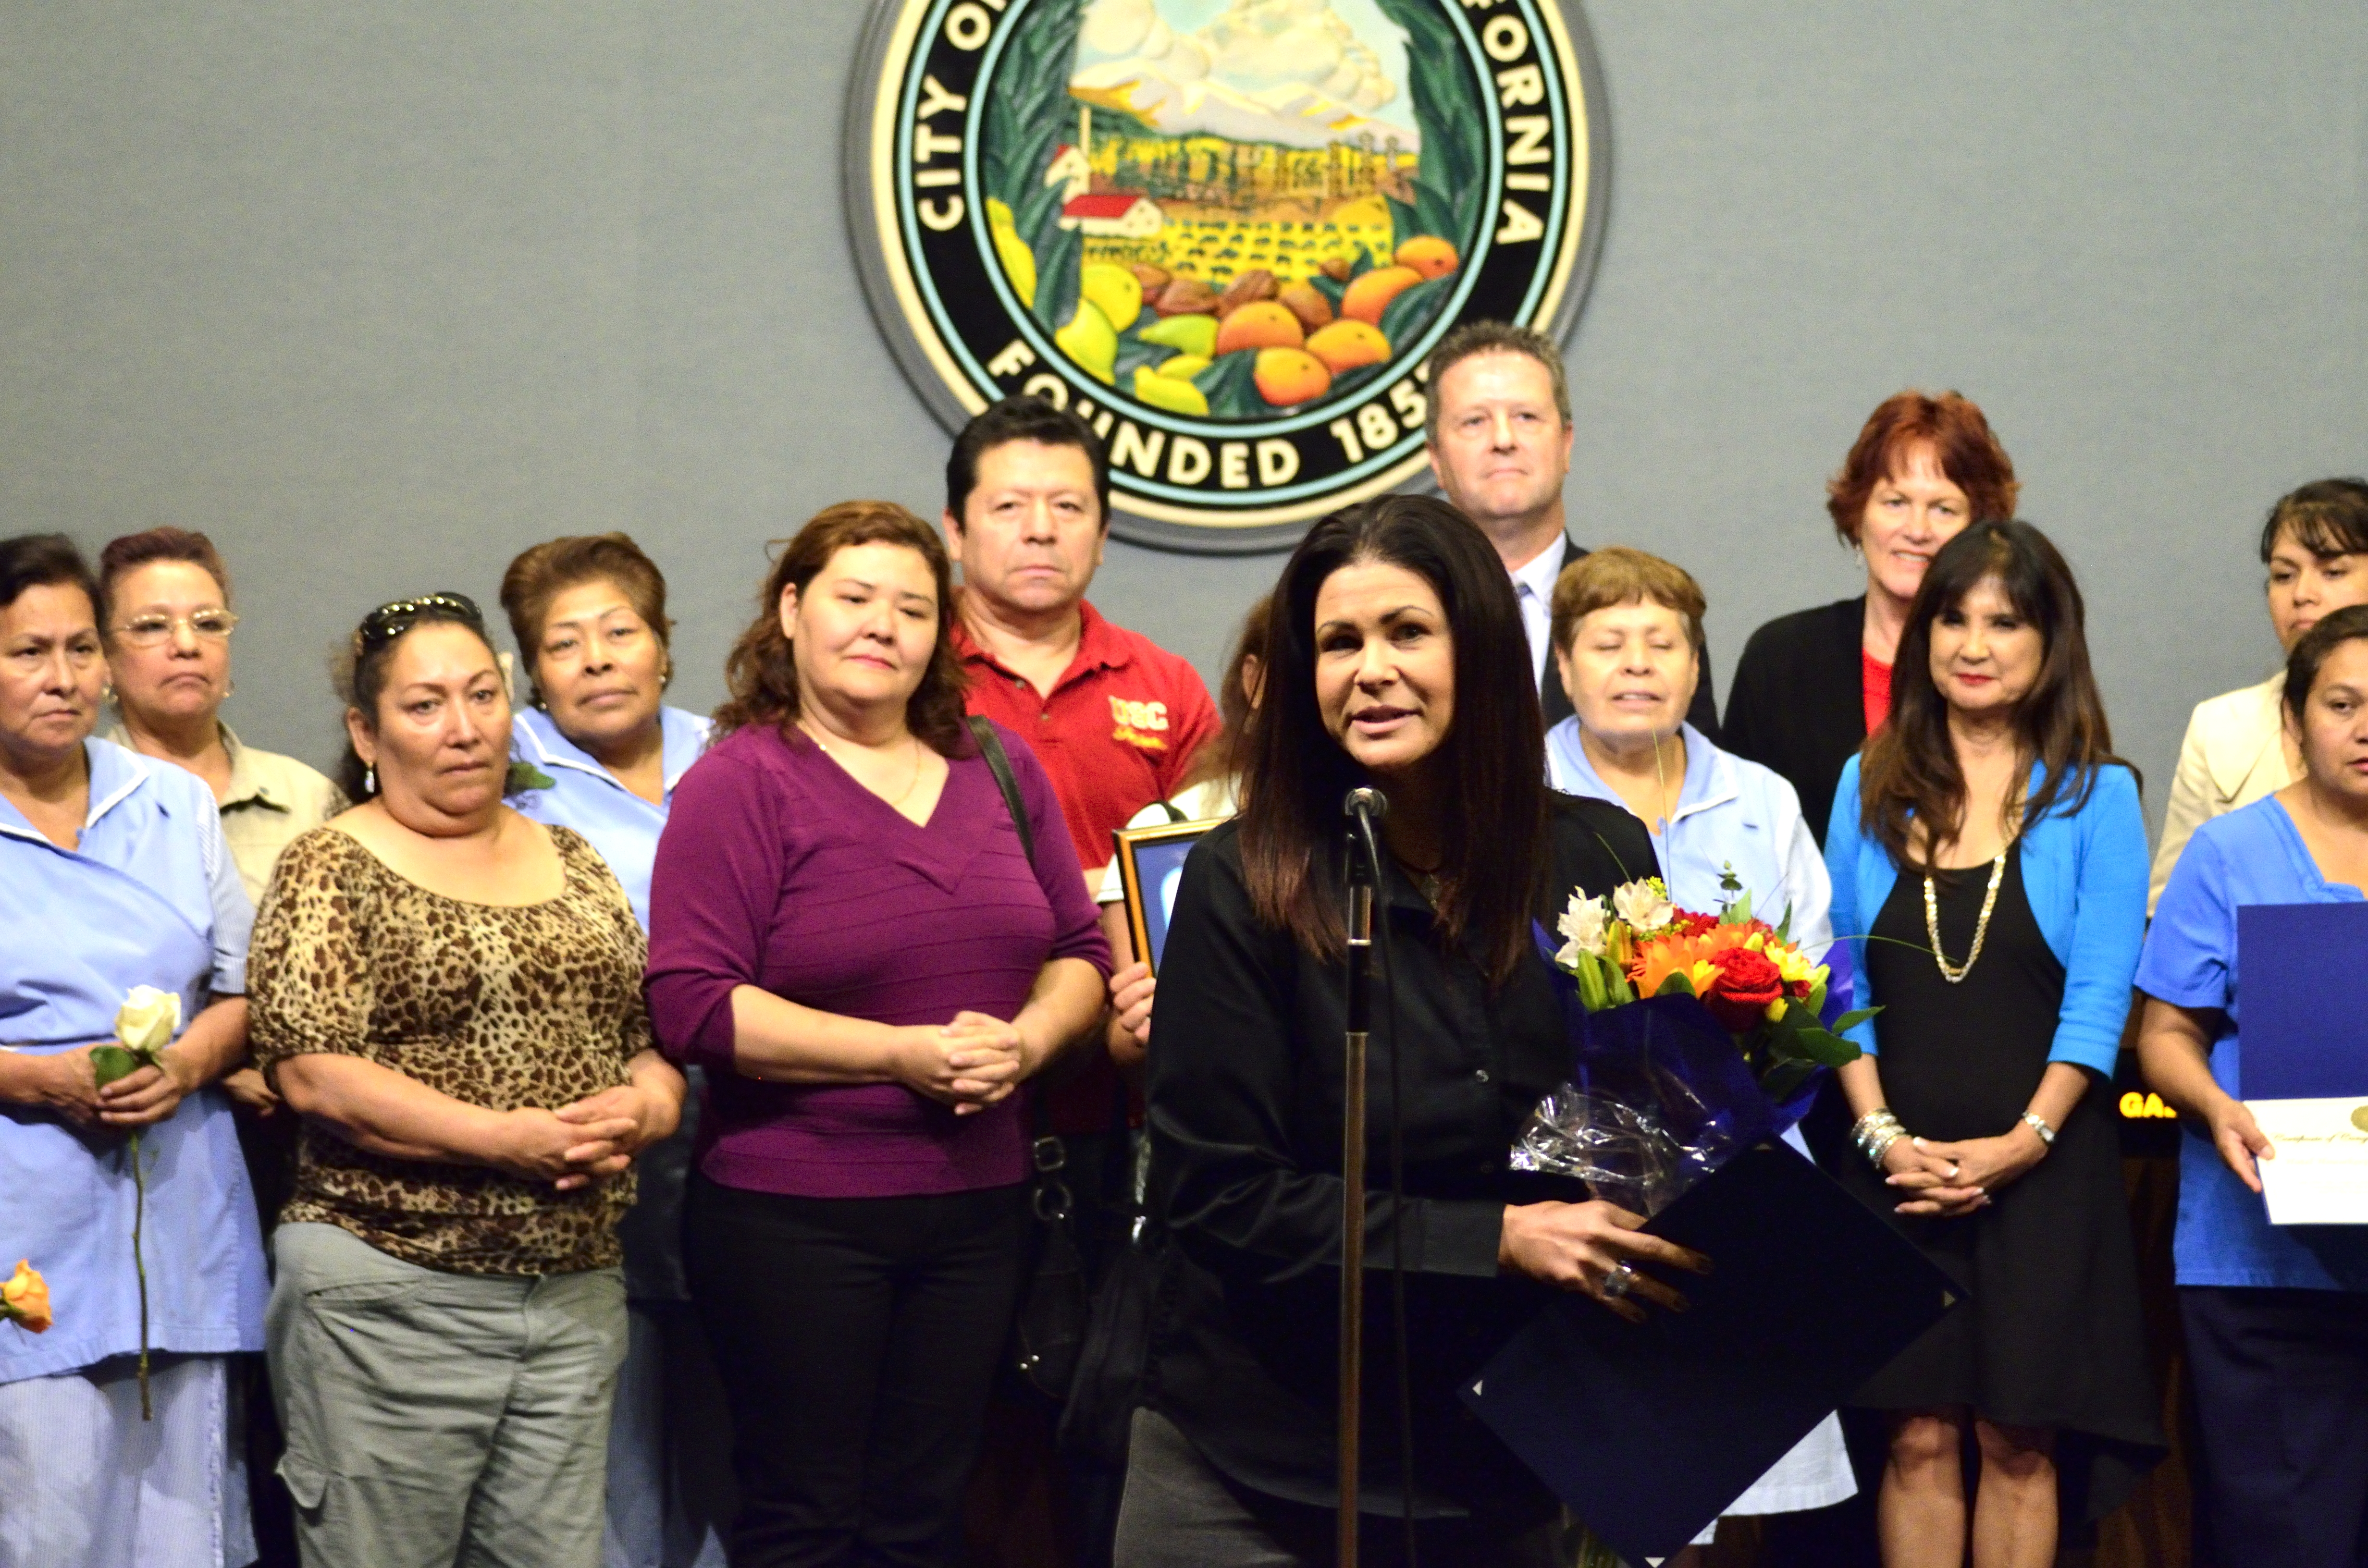 Woman speaking at City Council meeting while holding flowers